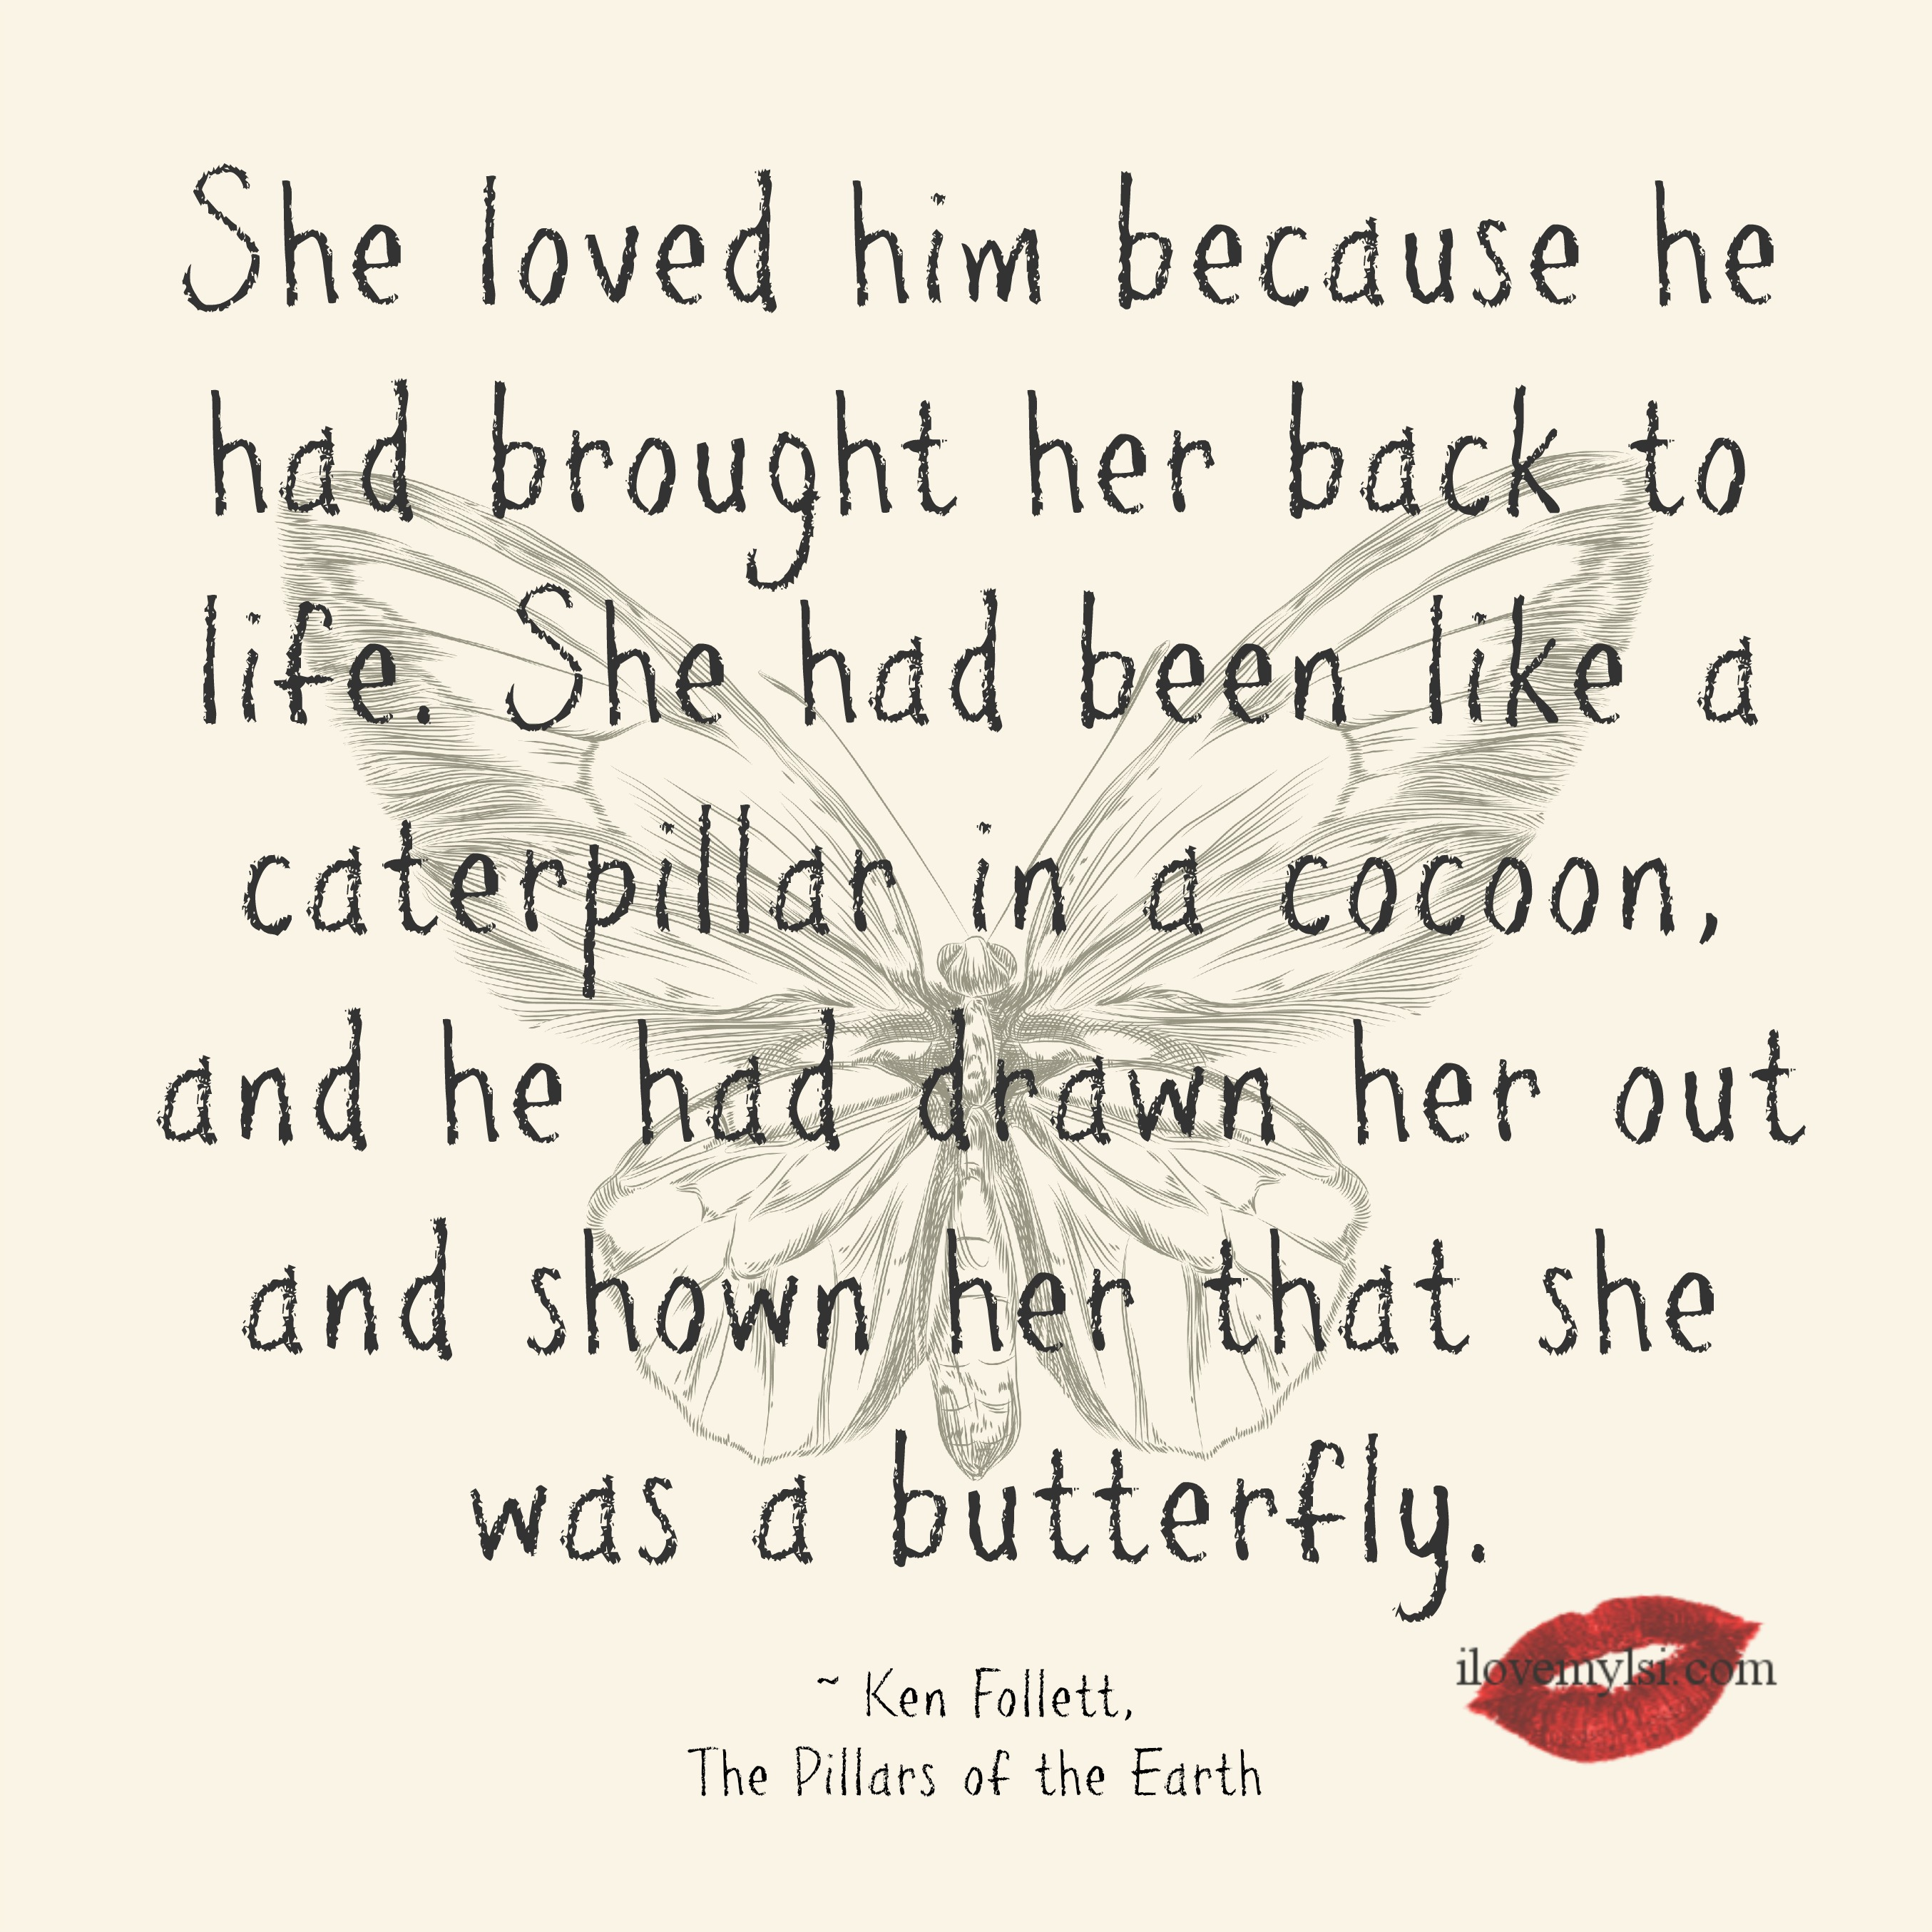 Love Quotes From Him: The 25 Most Romantic Love Quotes You Will Ever Read